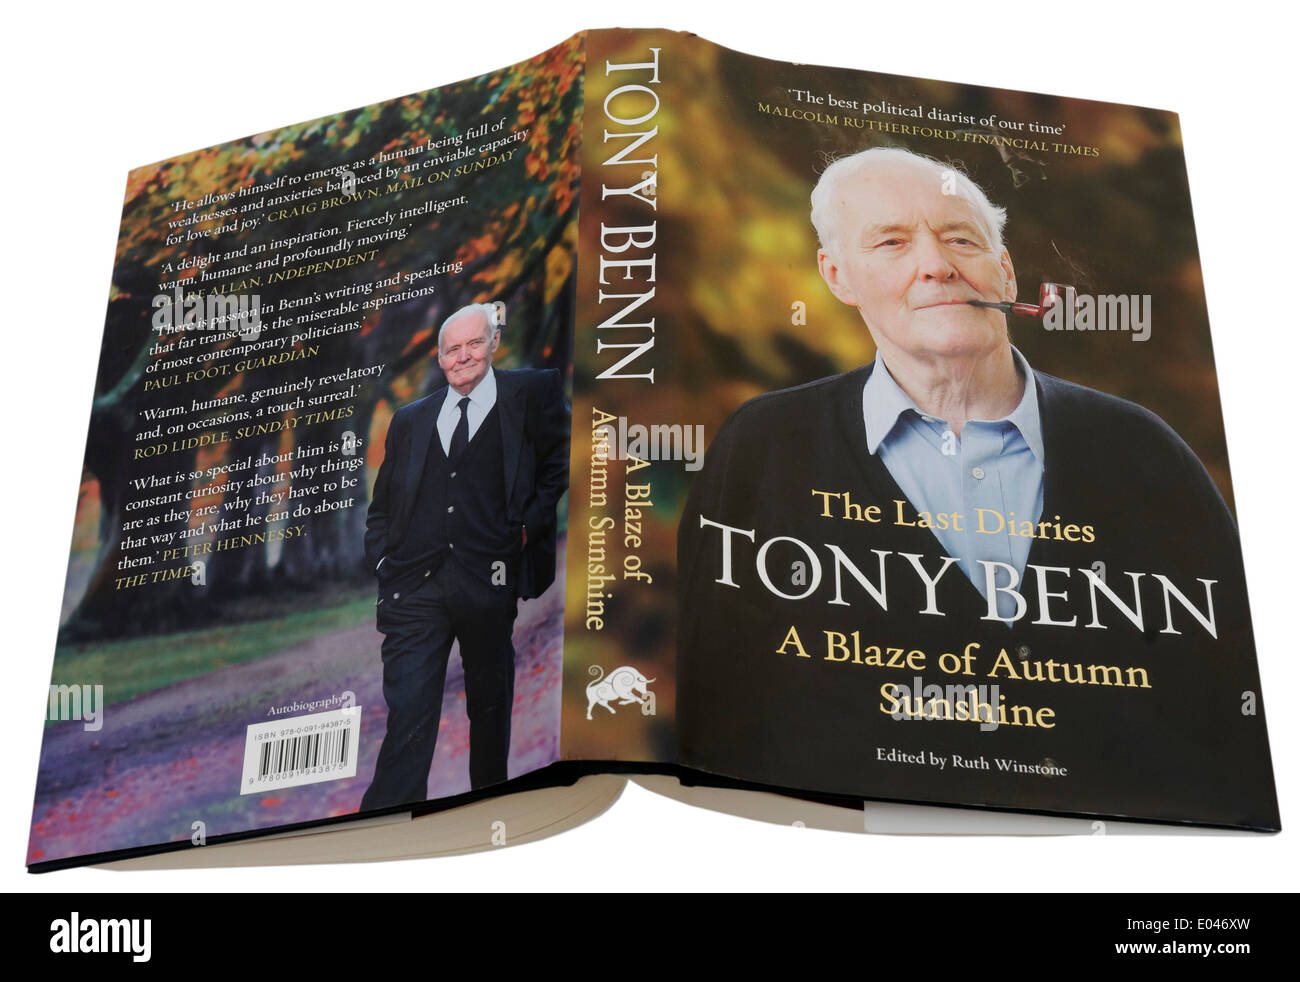 A Blaze of Autumn Sunshine by Tony Benn, the last volume of his political diaries - Stock Image